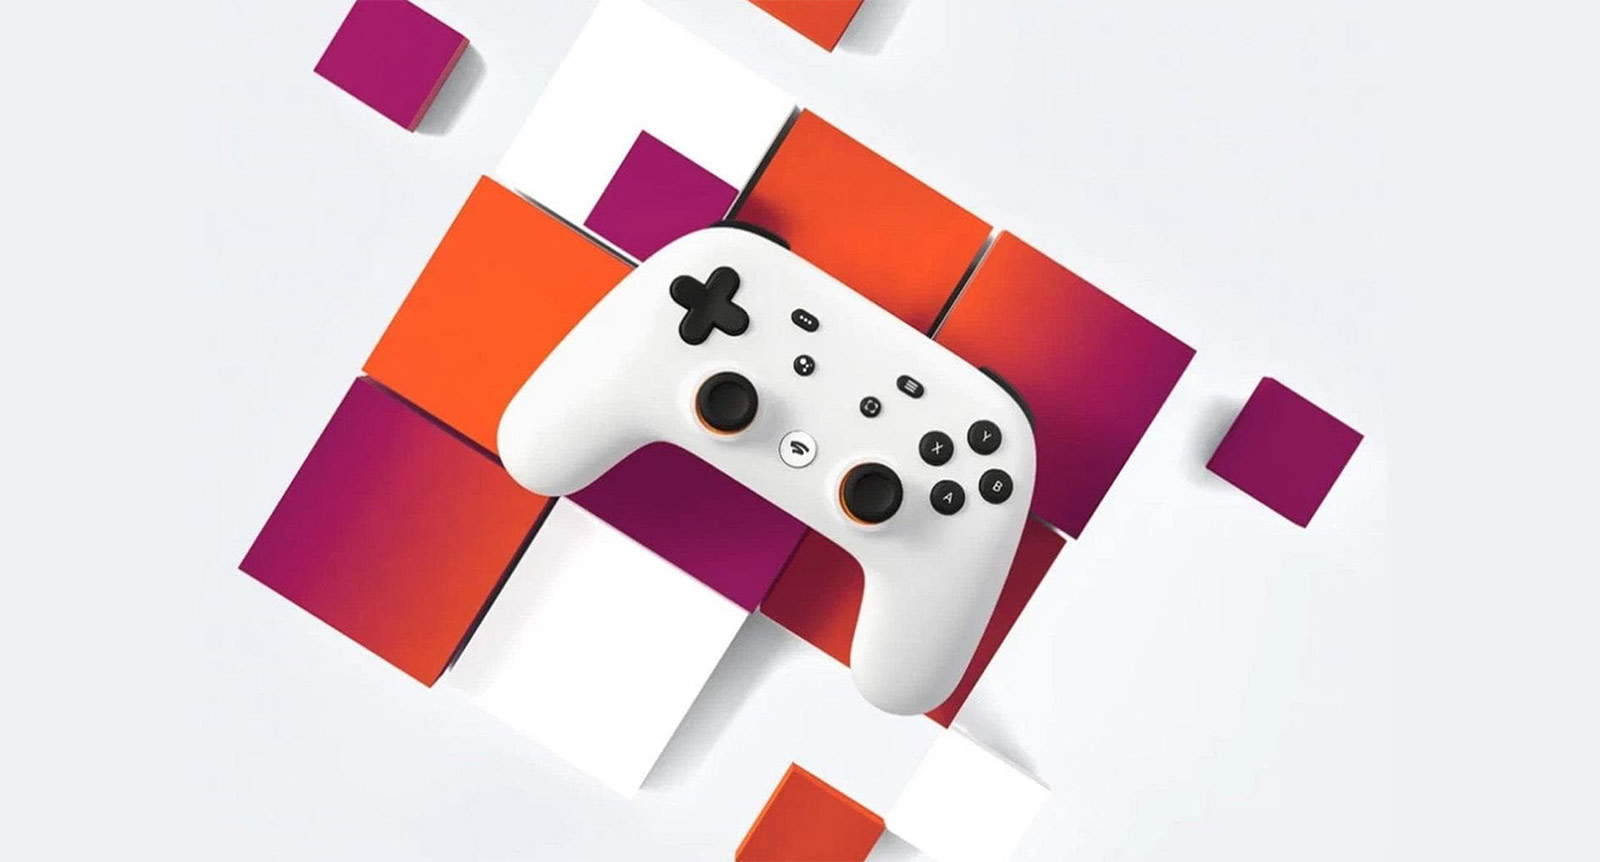 Google Stadia console controller.